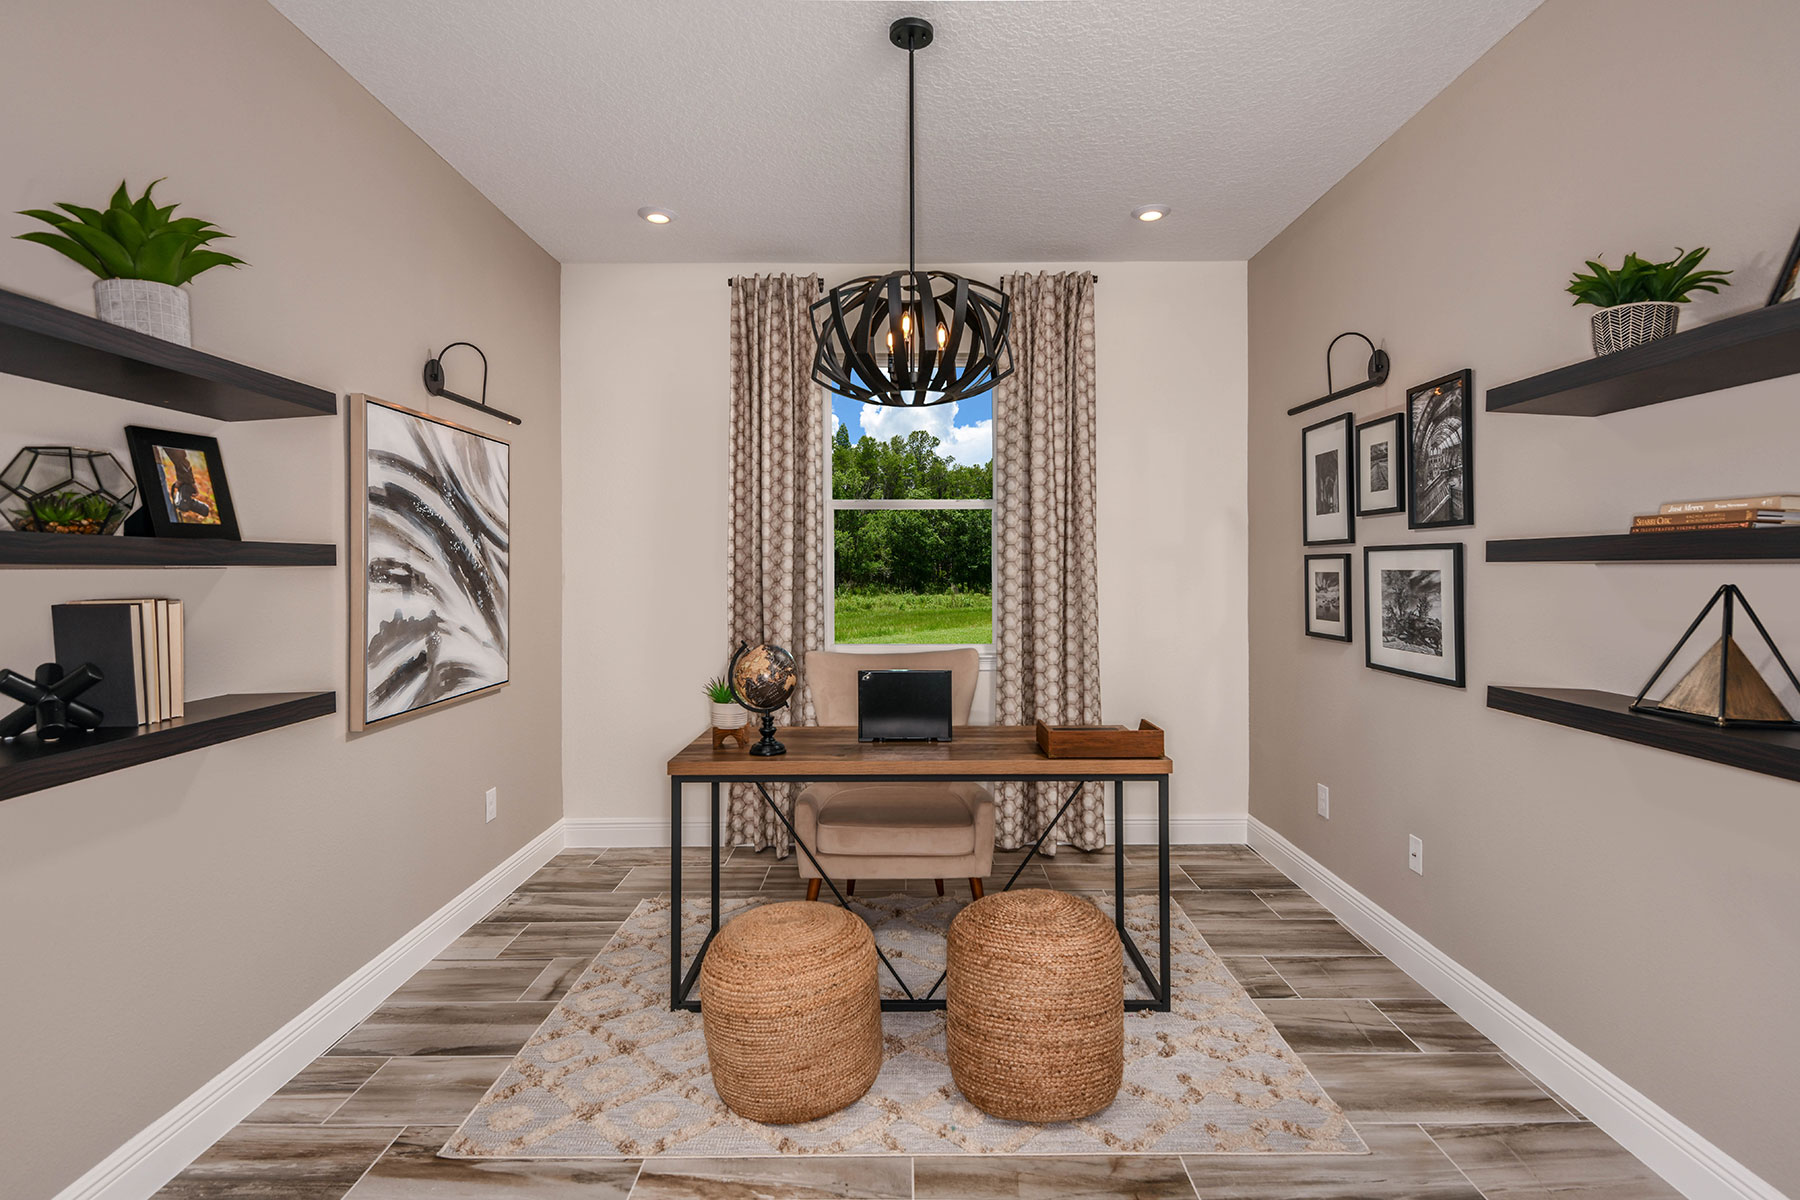 Elm Plan Study Room at Parkview at Long Lake Ranch in Lutz Florida by Mattamy Homes